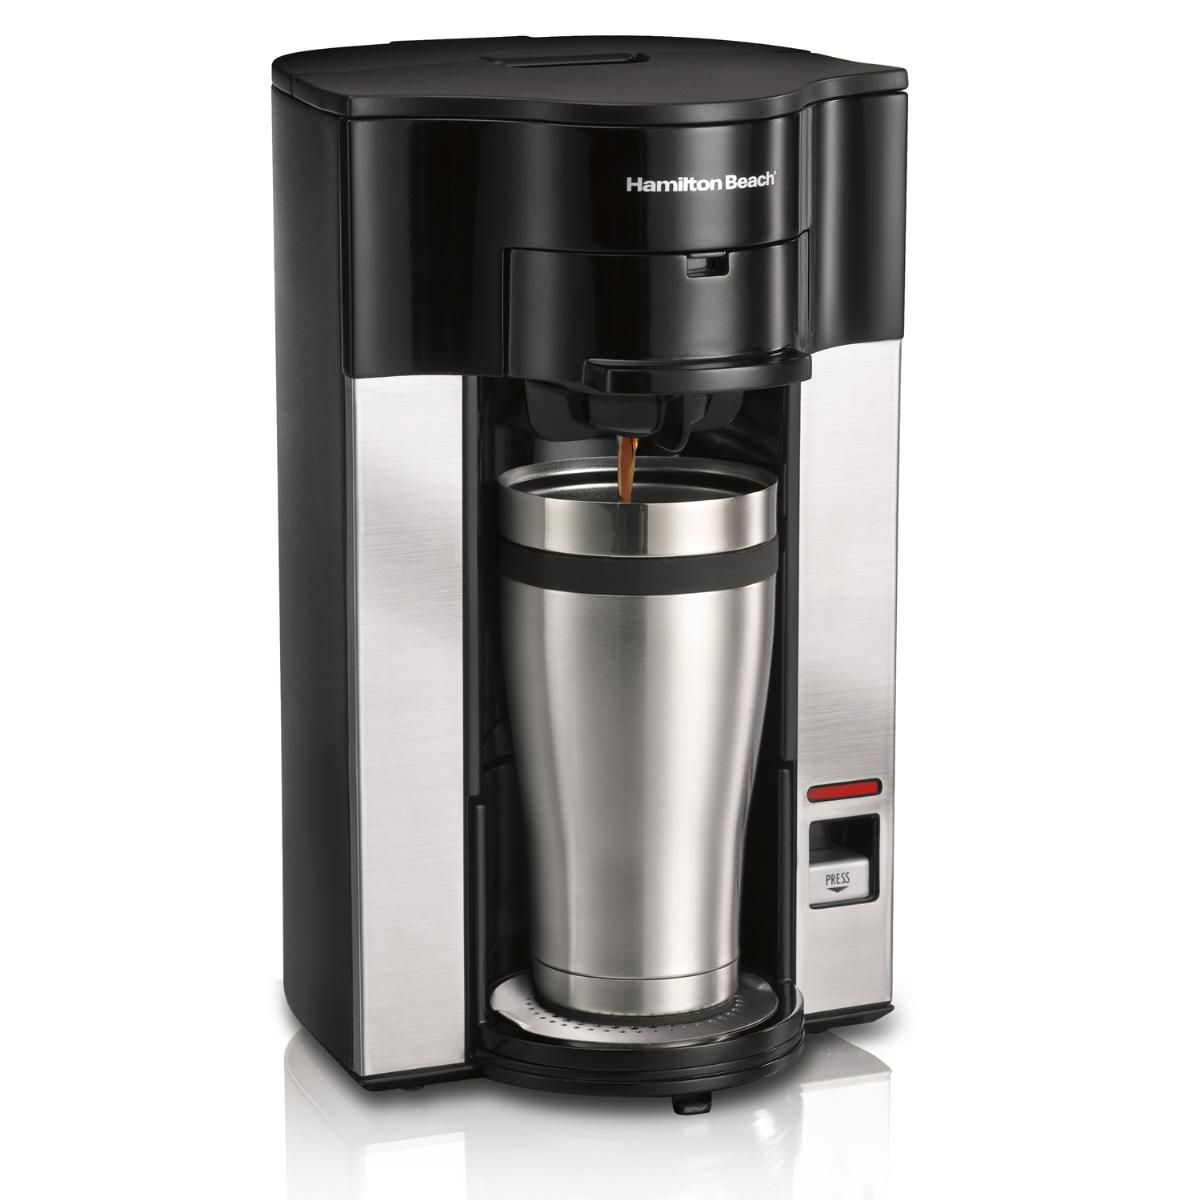 The Hamilton Beach 49990 Stay or Go personal cup pod coffee maker was designed to keep up with an on-the-go lifestyle.